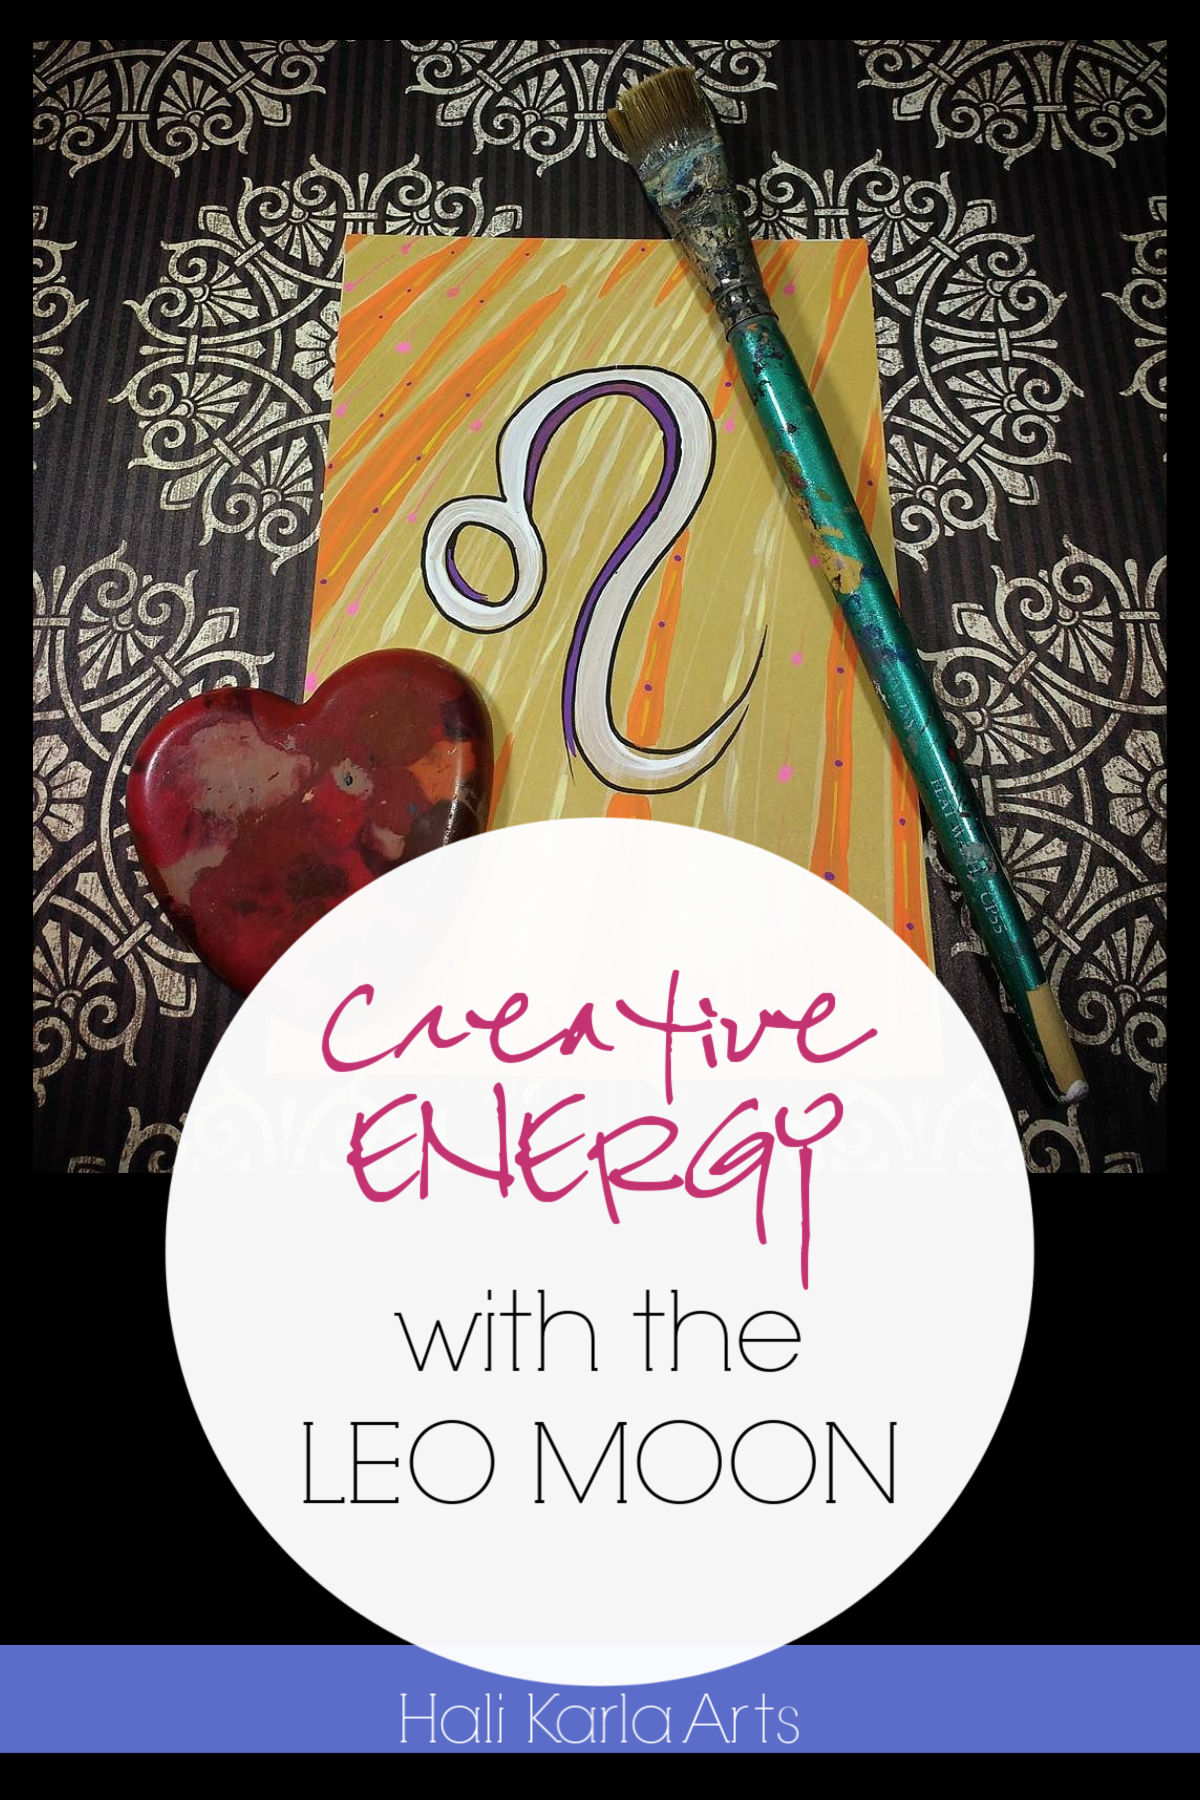 Creative Energy focus when the Moon is the the sign of Leo   Hali Karla Arts